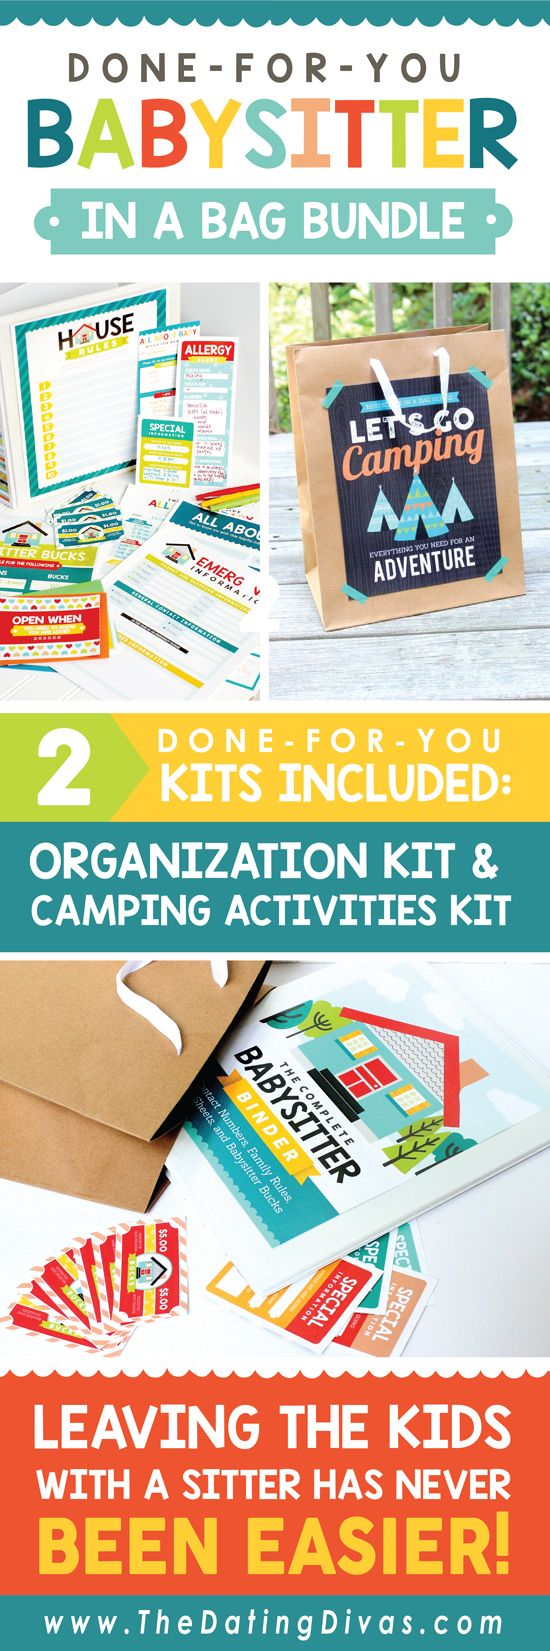 our babysitter activities for kids kits provide everything you need to communicate with your babysitter plus